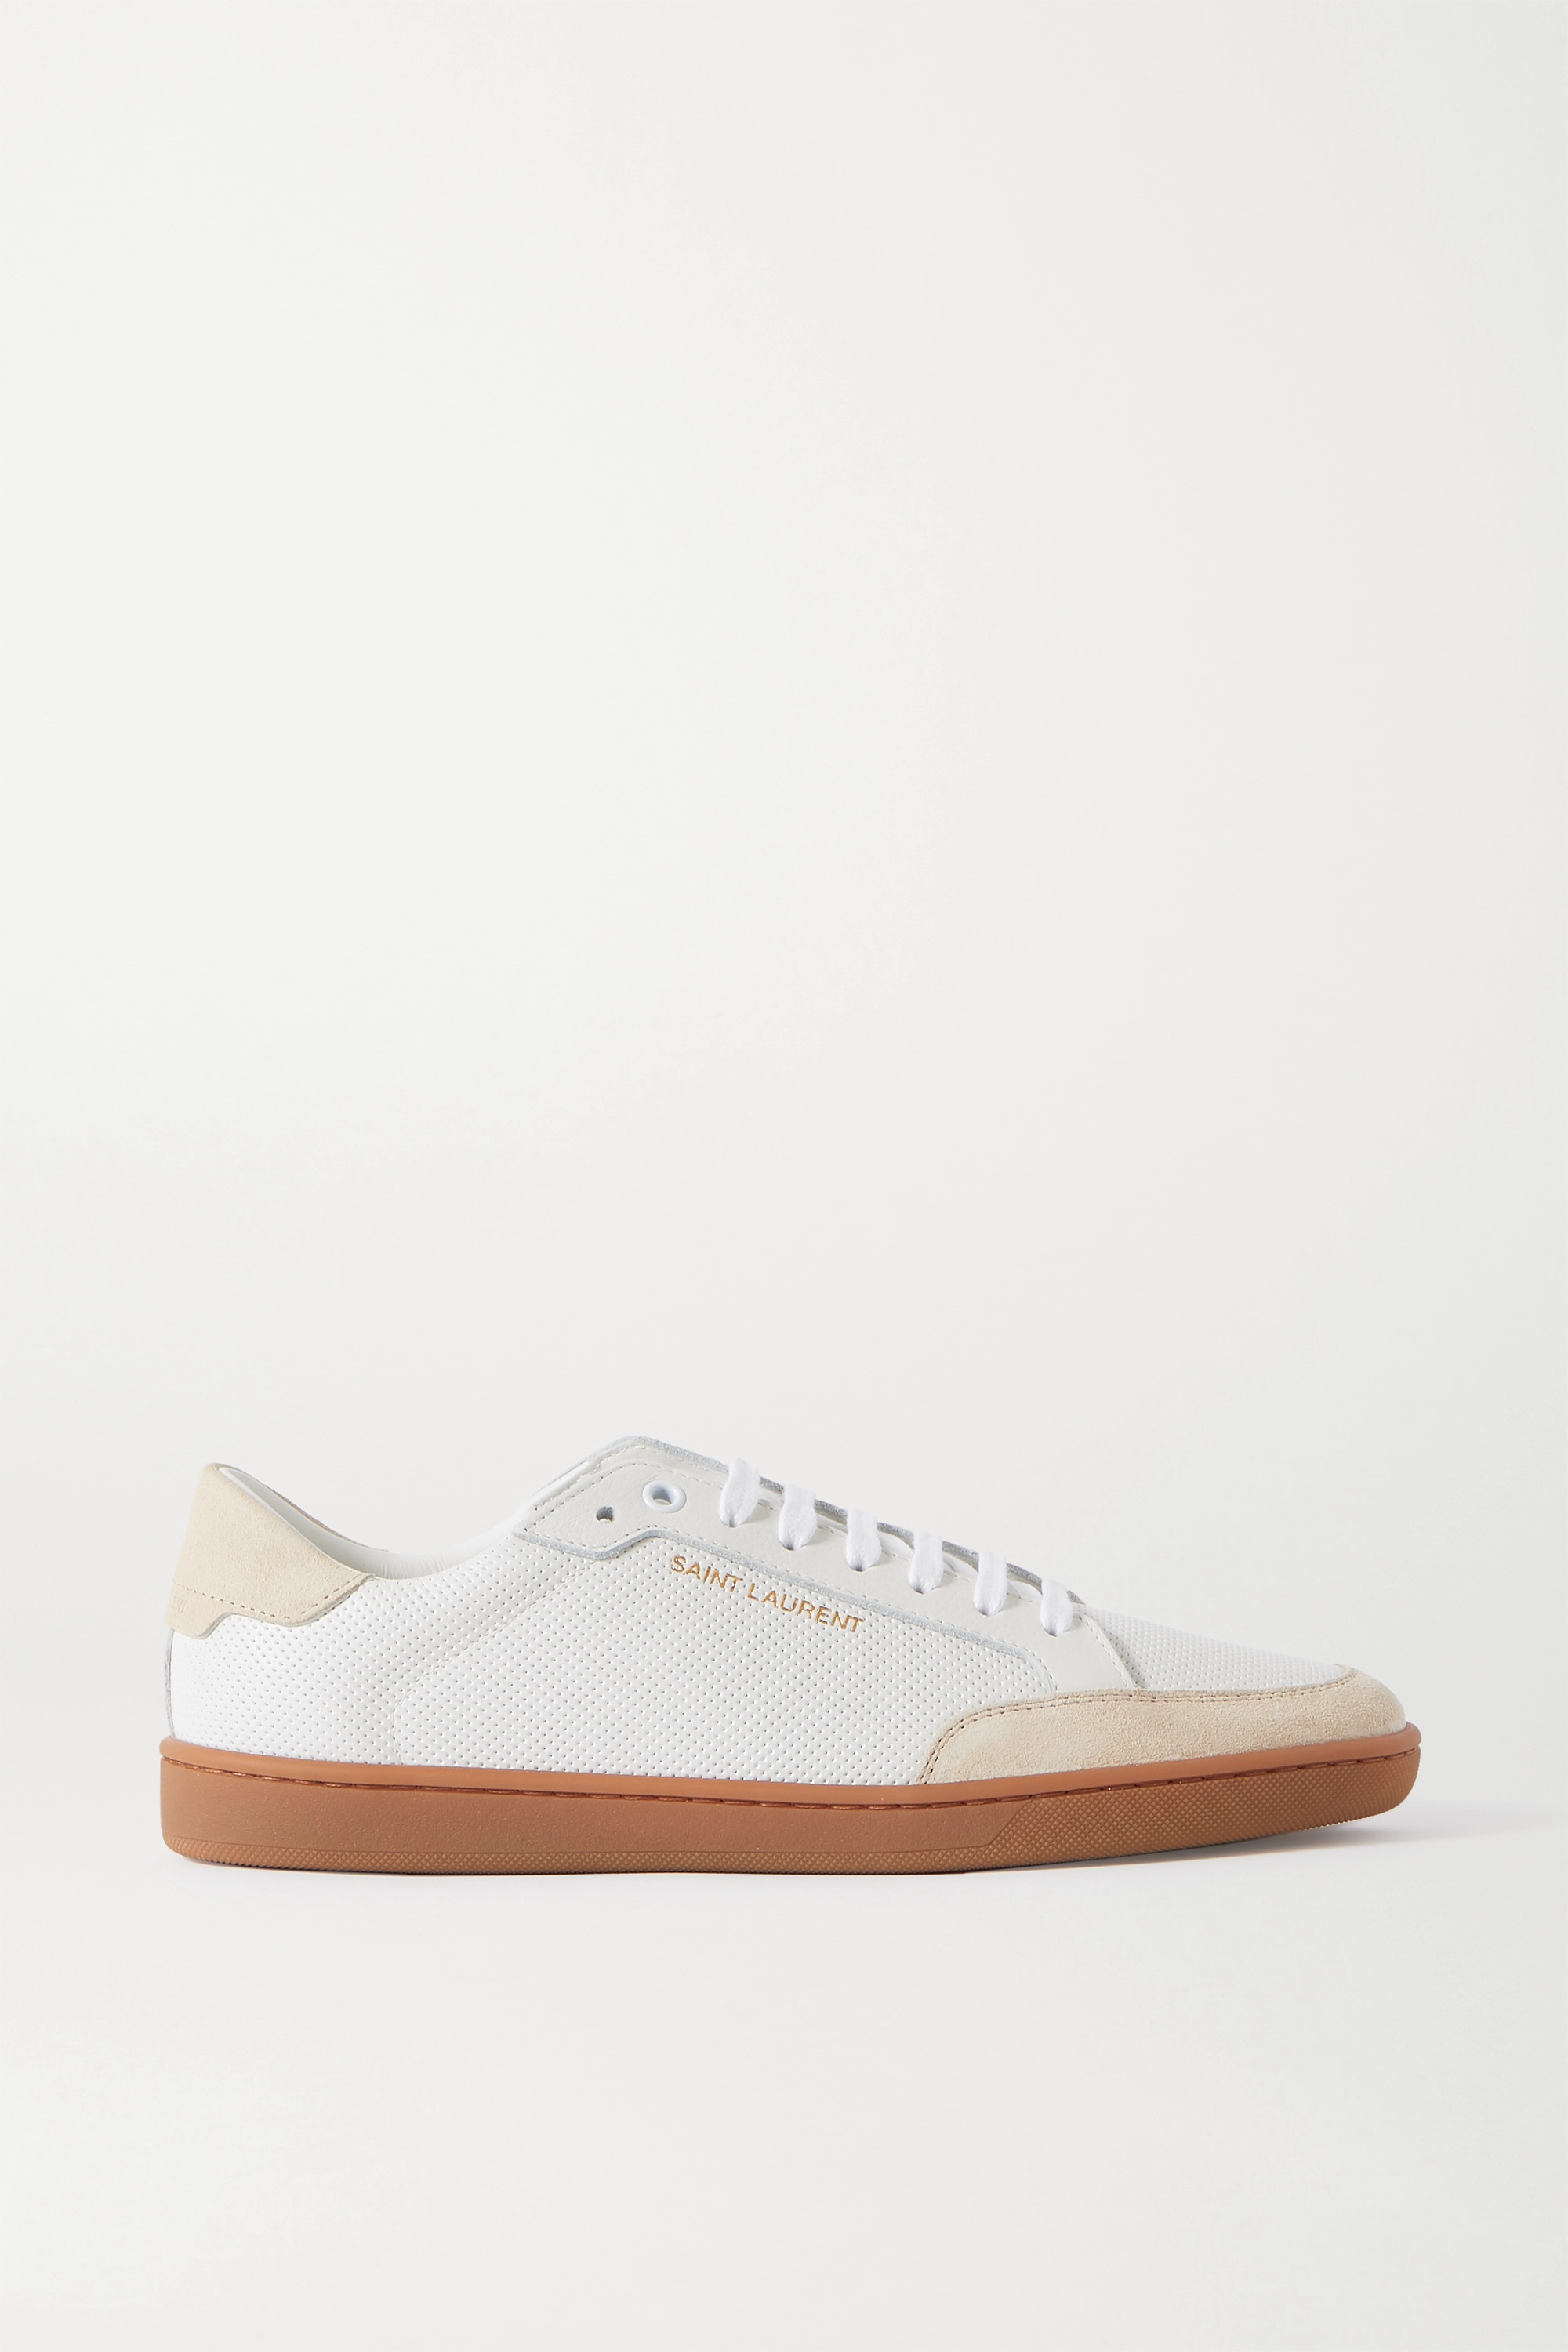 SAINT LAURENT Court Classic perforated leather and suede sneakers